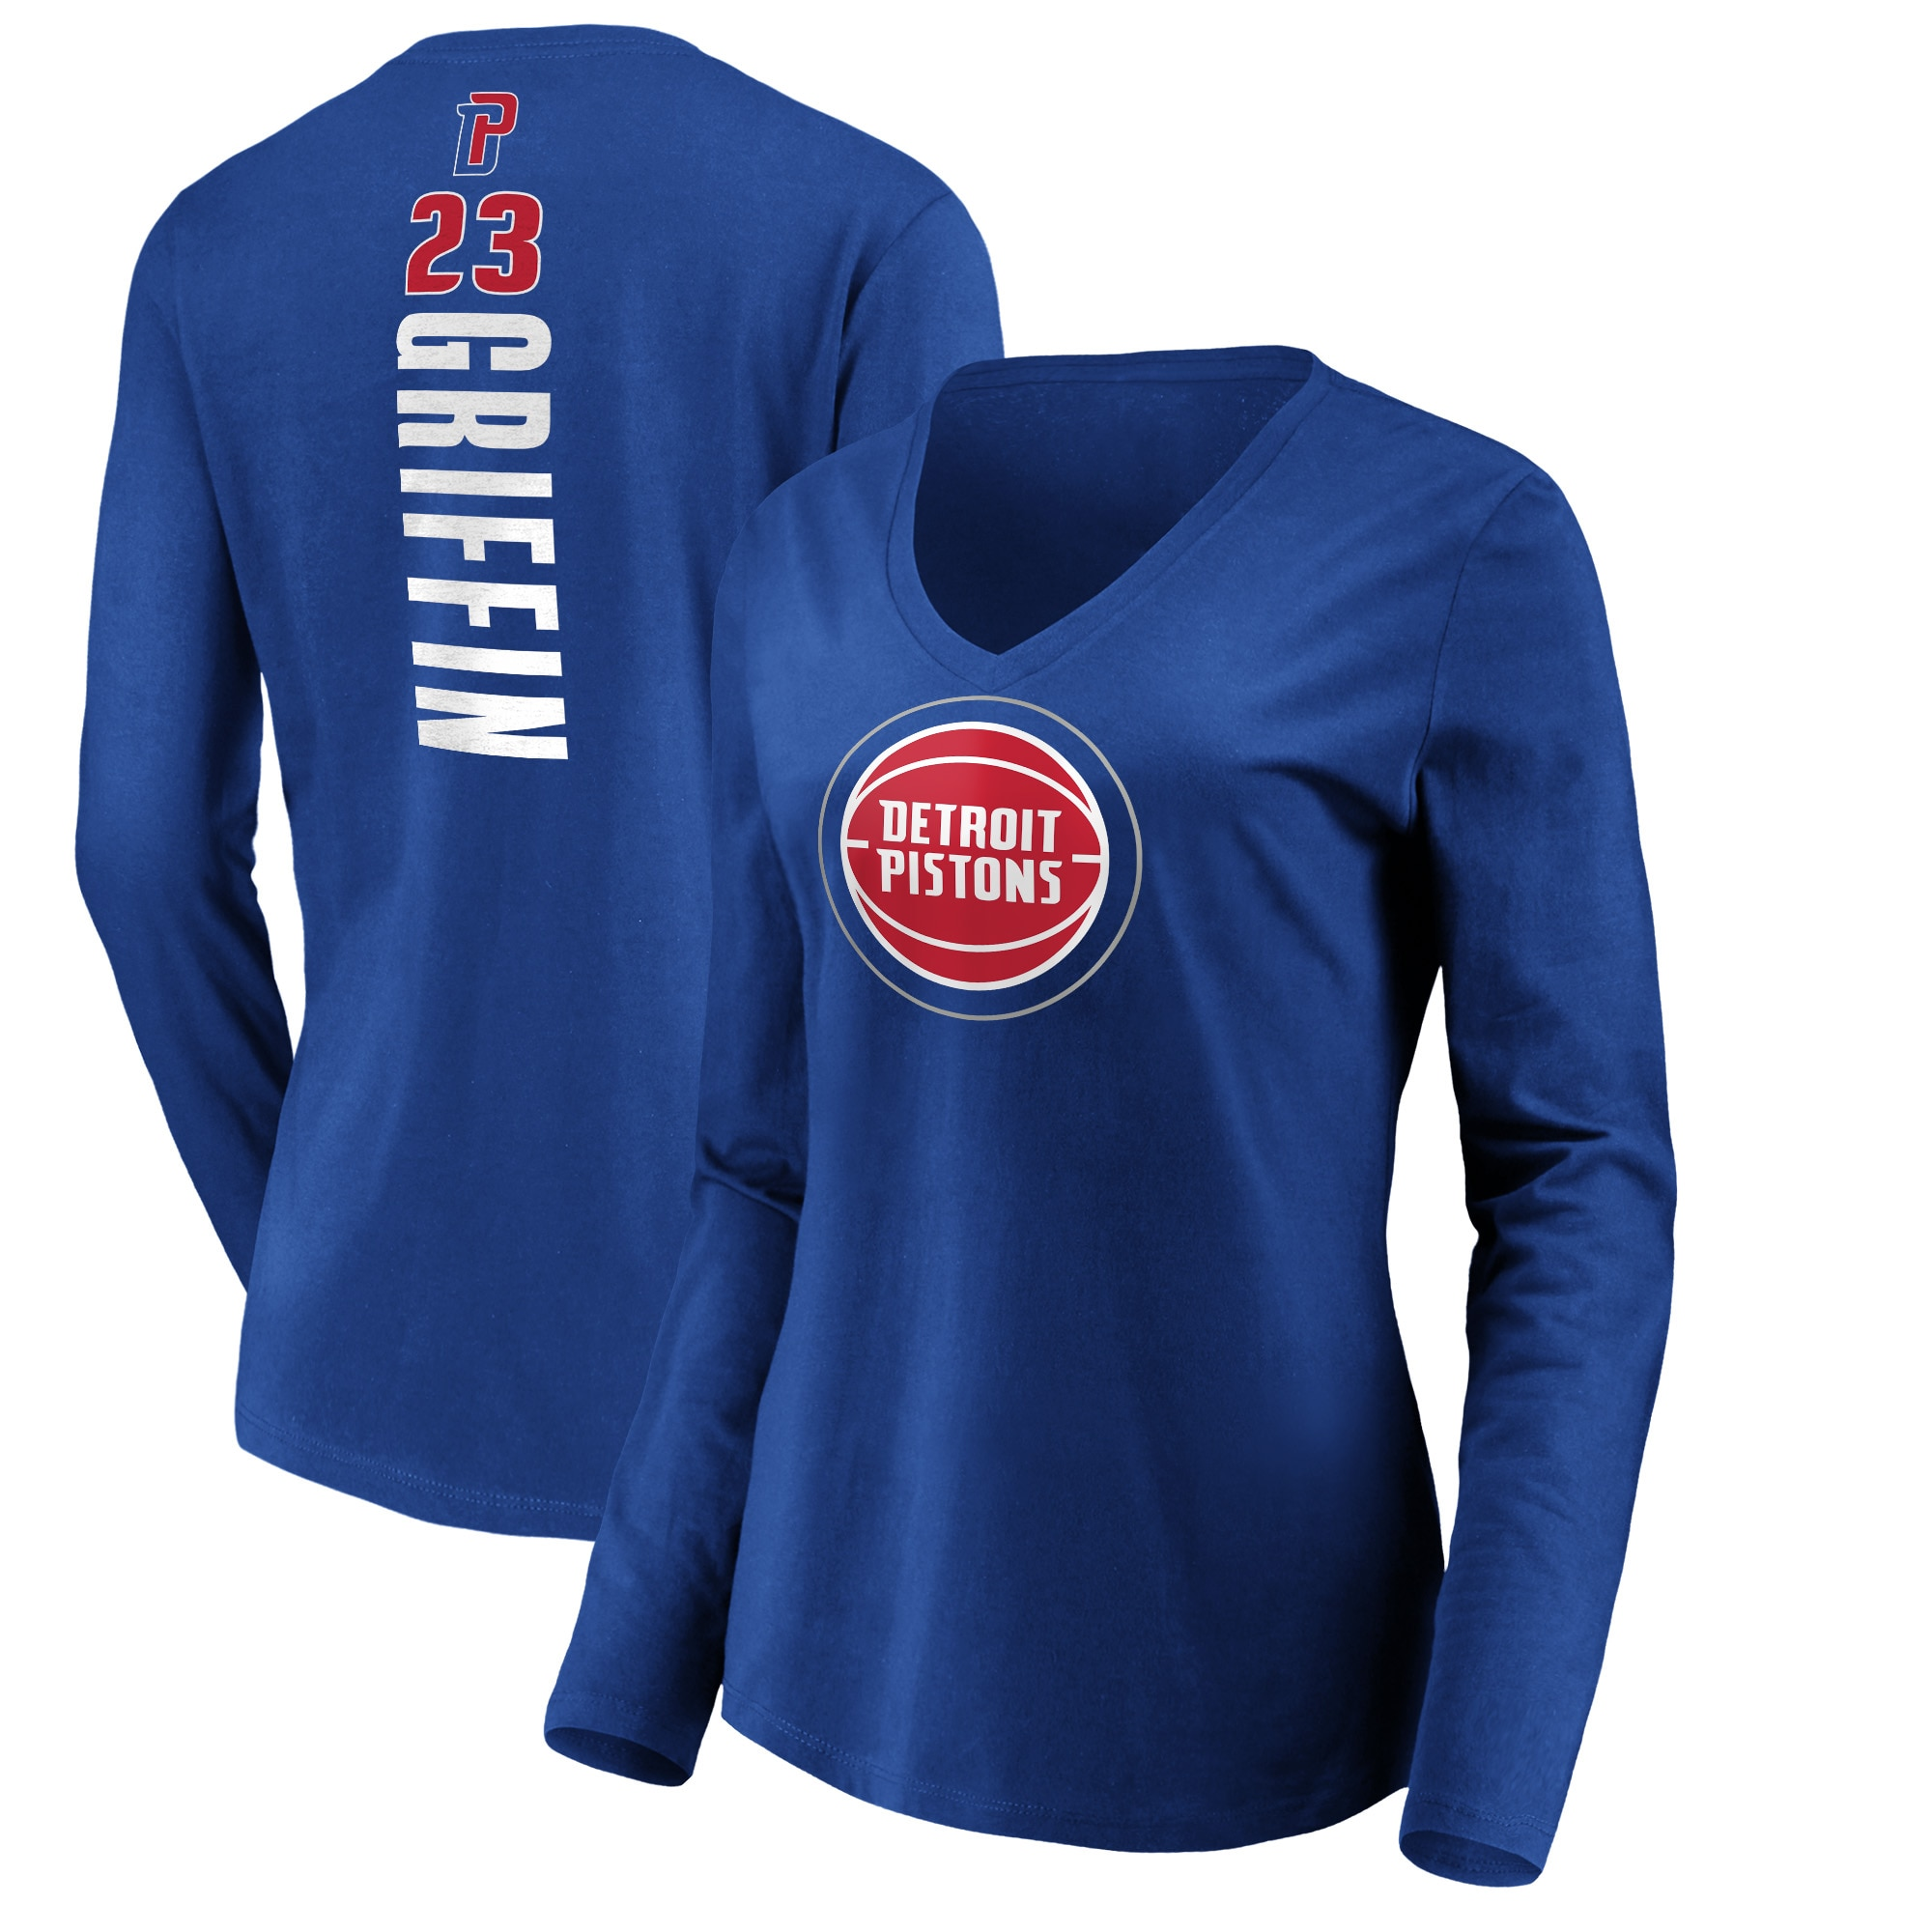 Blake Griffin Detroit Pistons Fanatics Branded Women's Playmaker Name & Number V-Neck Long Sleeve T-Shirt - Royal